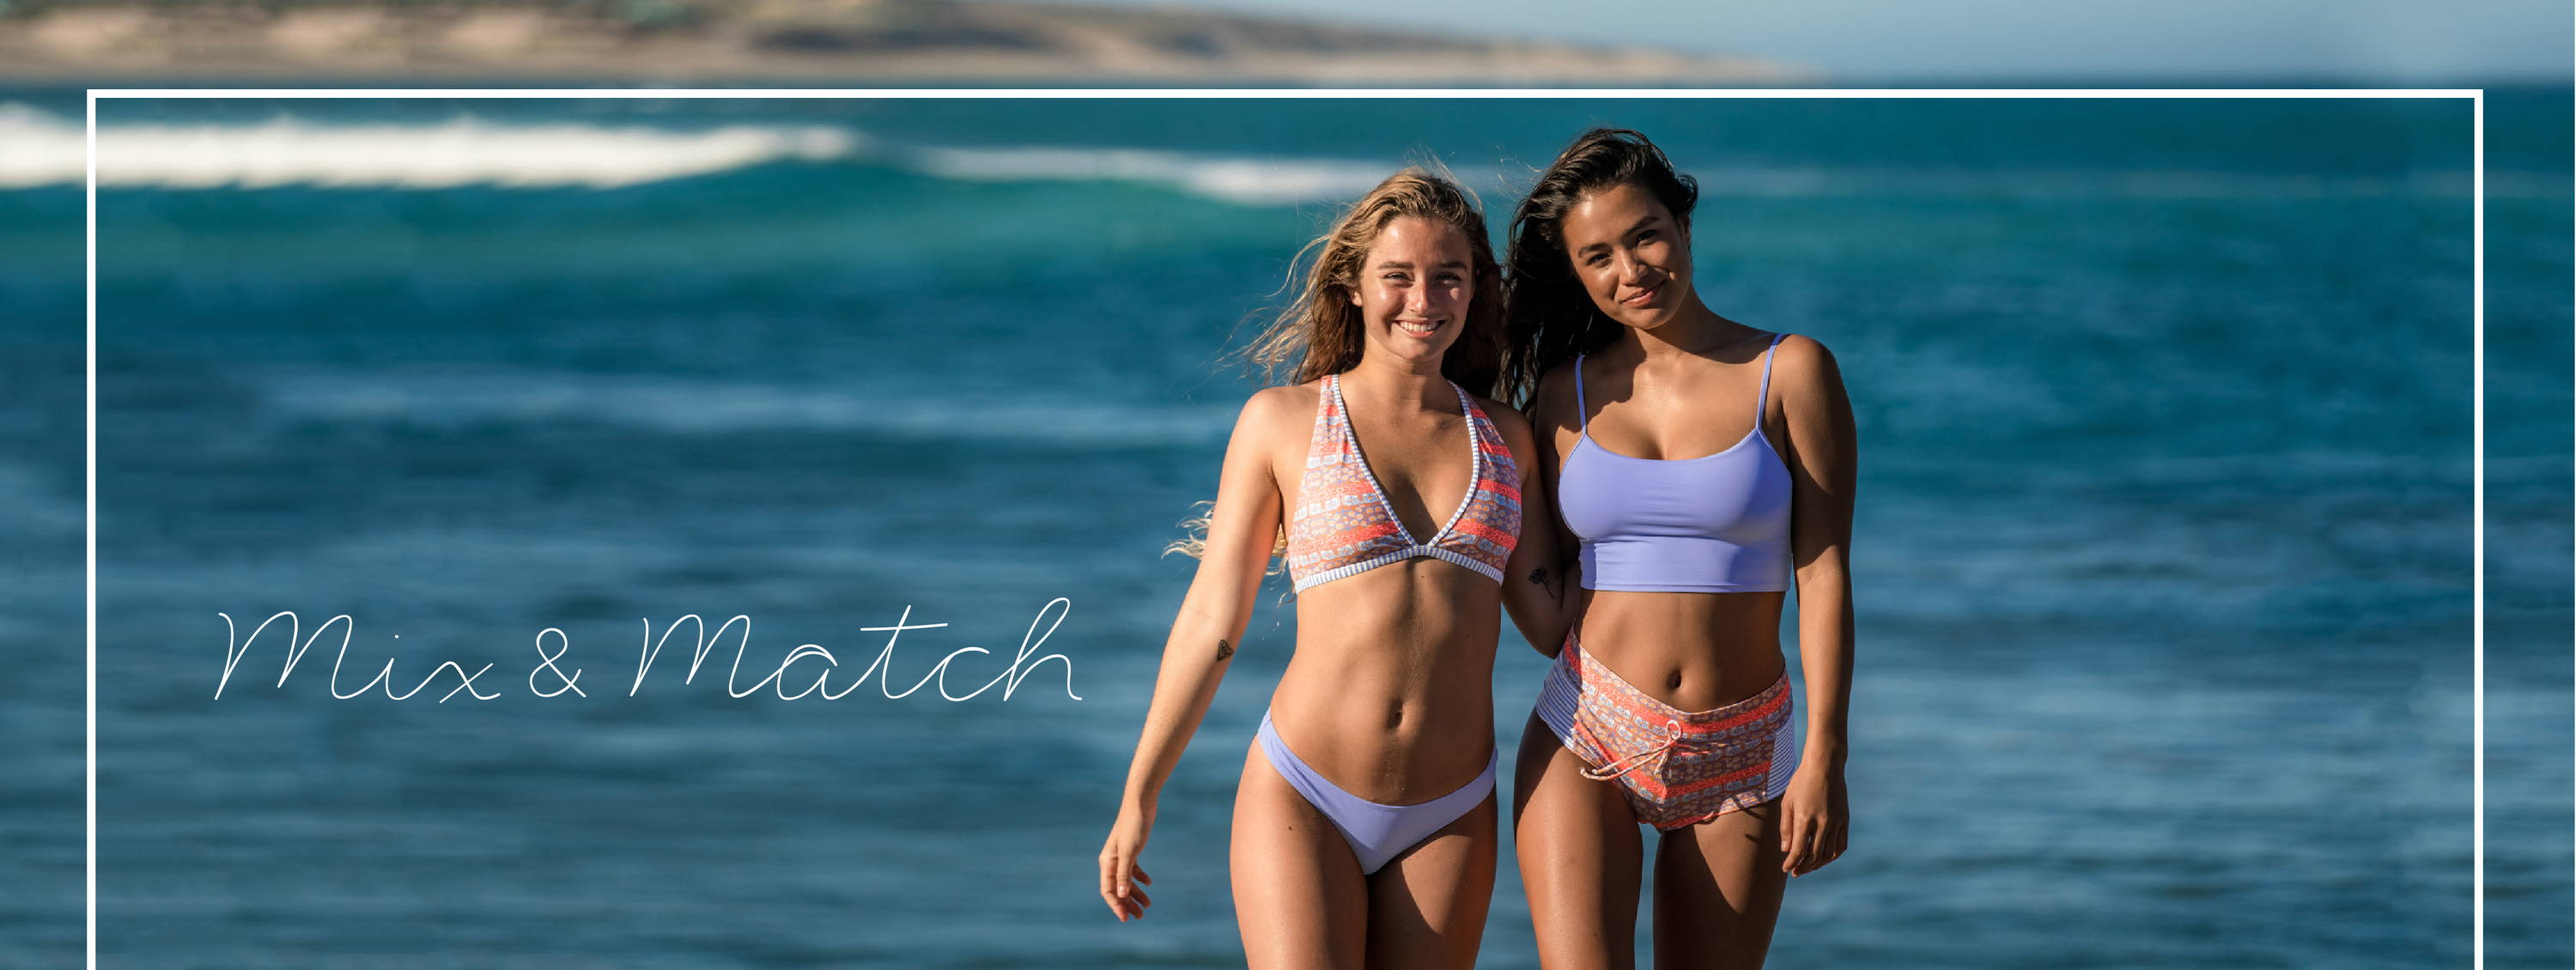 Shop the MIX AND MATCH bikinis!